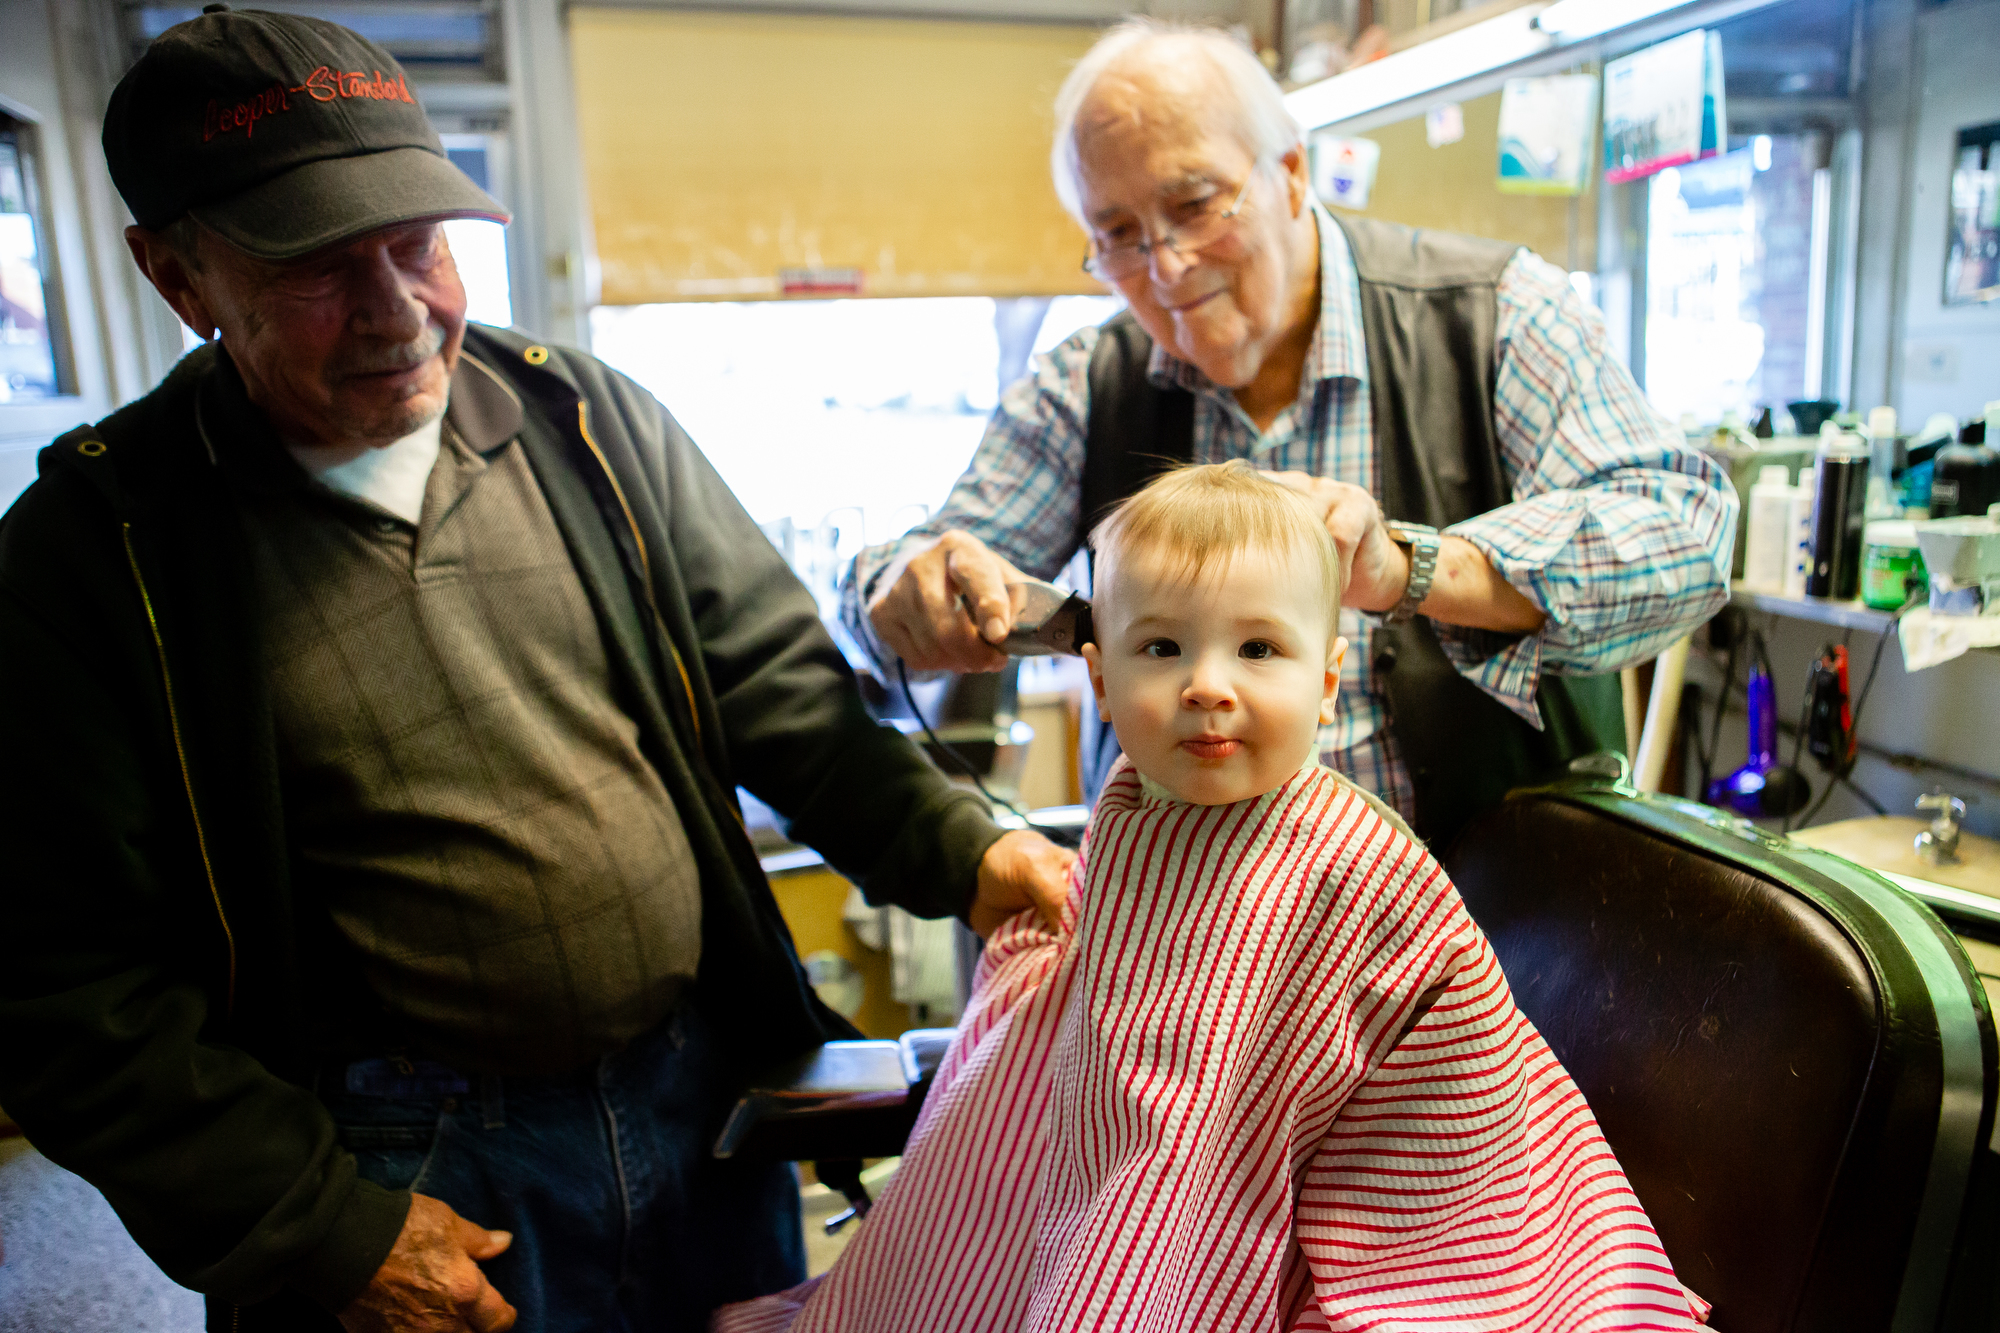 Fox's first haircut at Dennis Snapp's